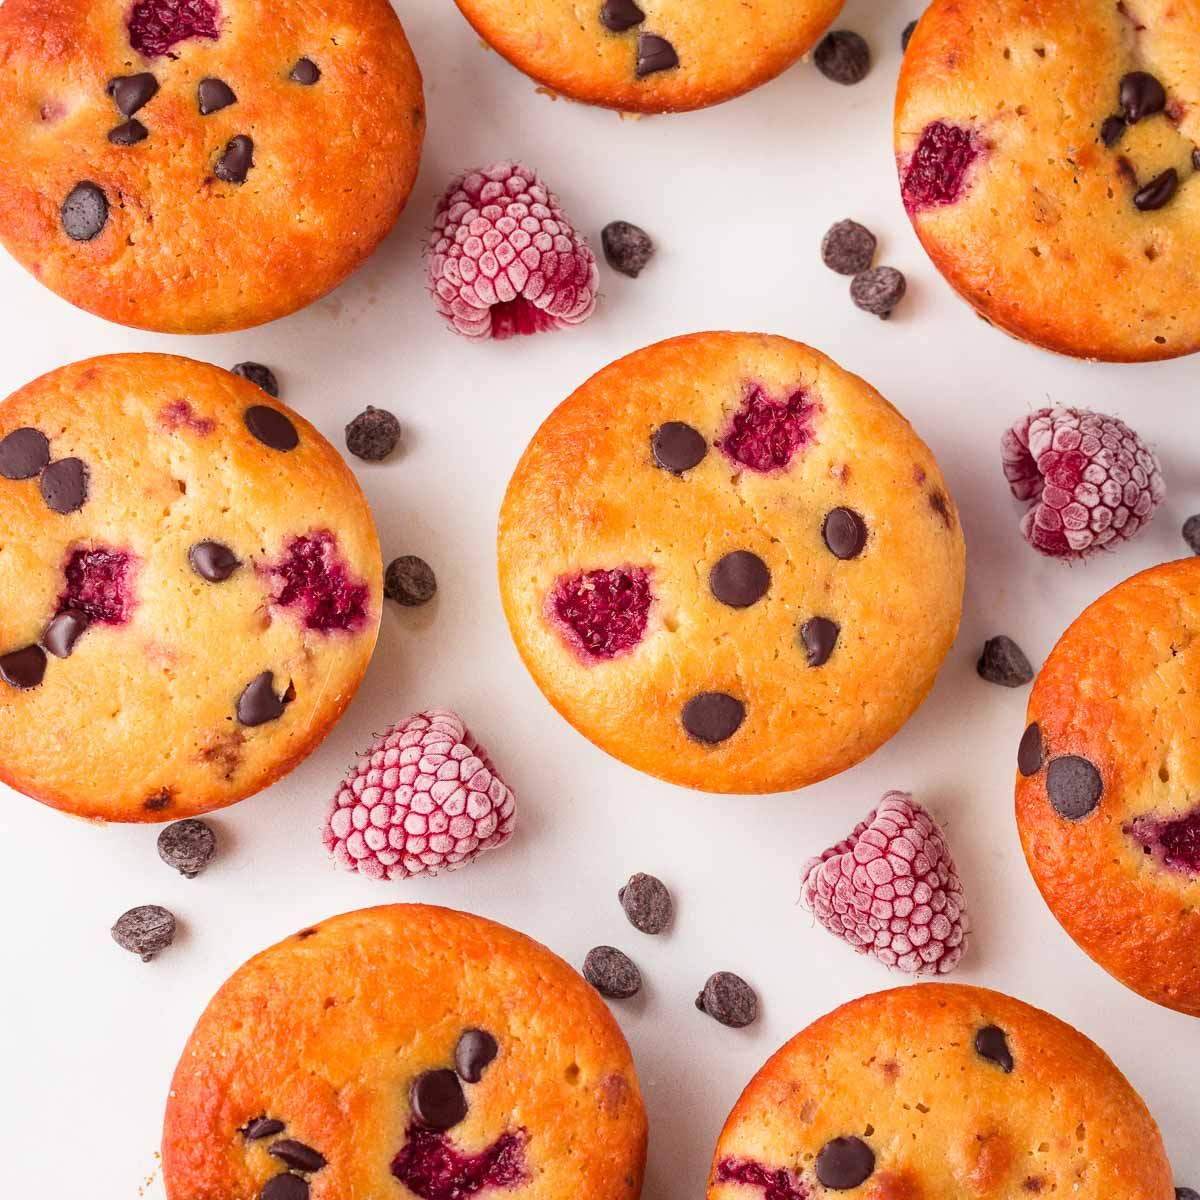 muffins with raspberries and chocolate chips.